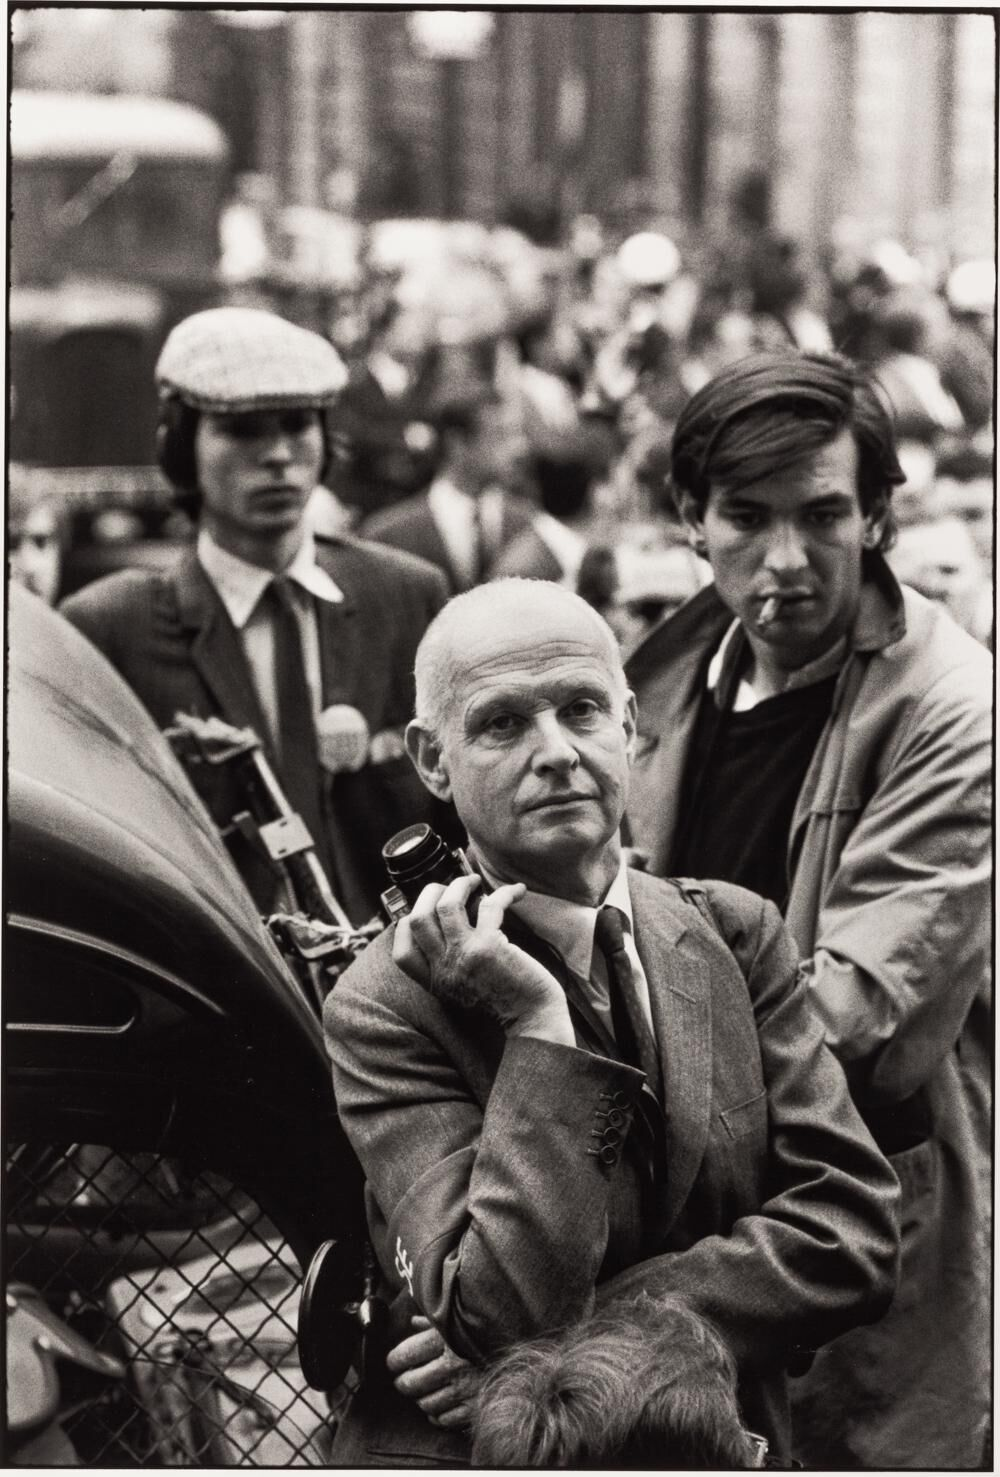 Photographer Henri Cartier-Bresson stands by with his camera during the 1968 Paris riots. Photo by Alain Nogues/Sygma/Sygma via Getty Images.